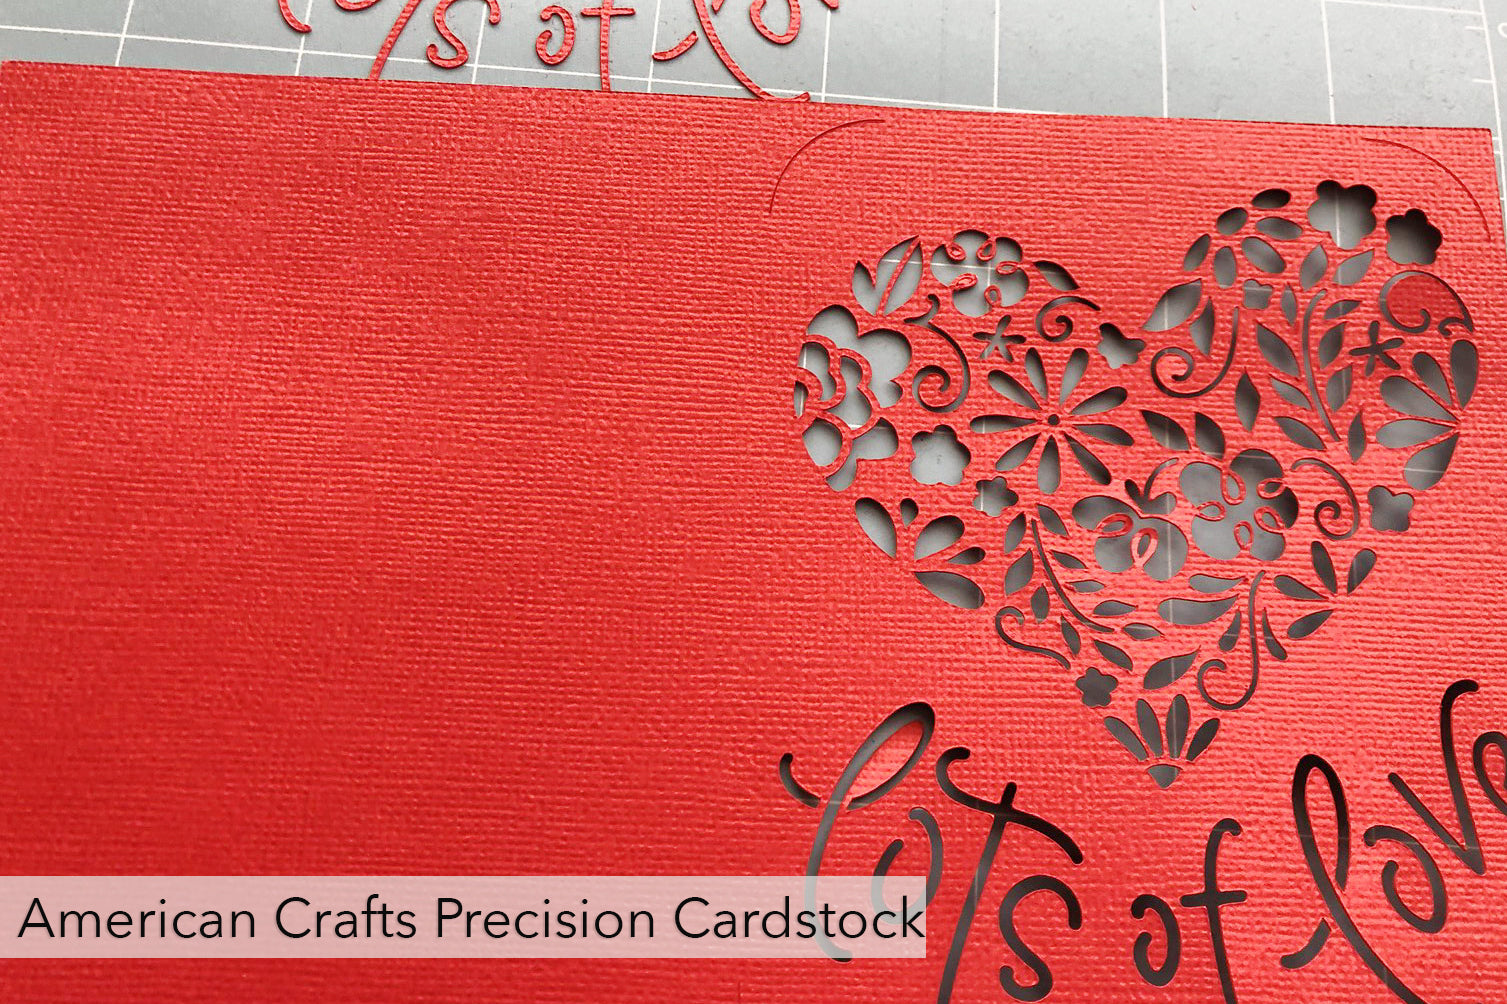 american crafts precision cardstock test cuts